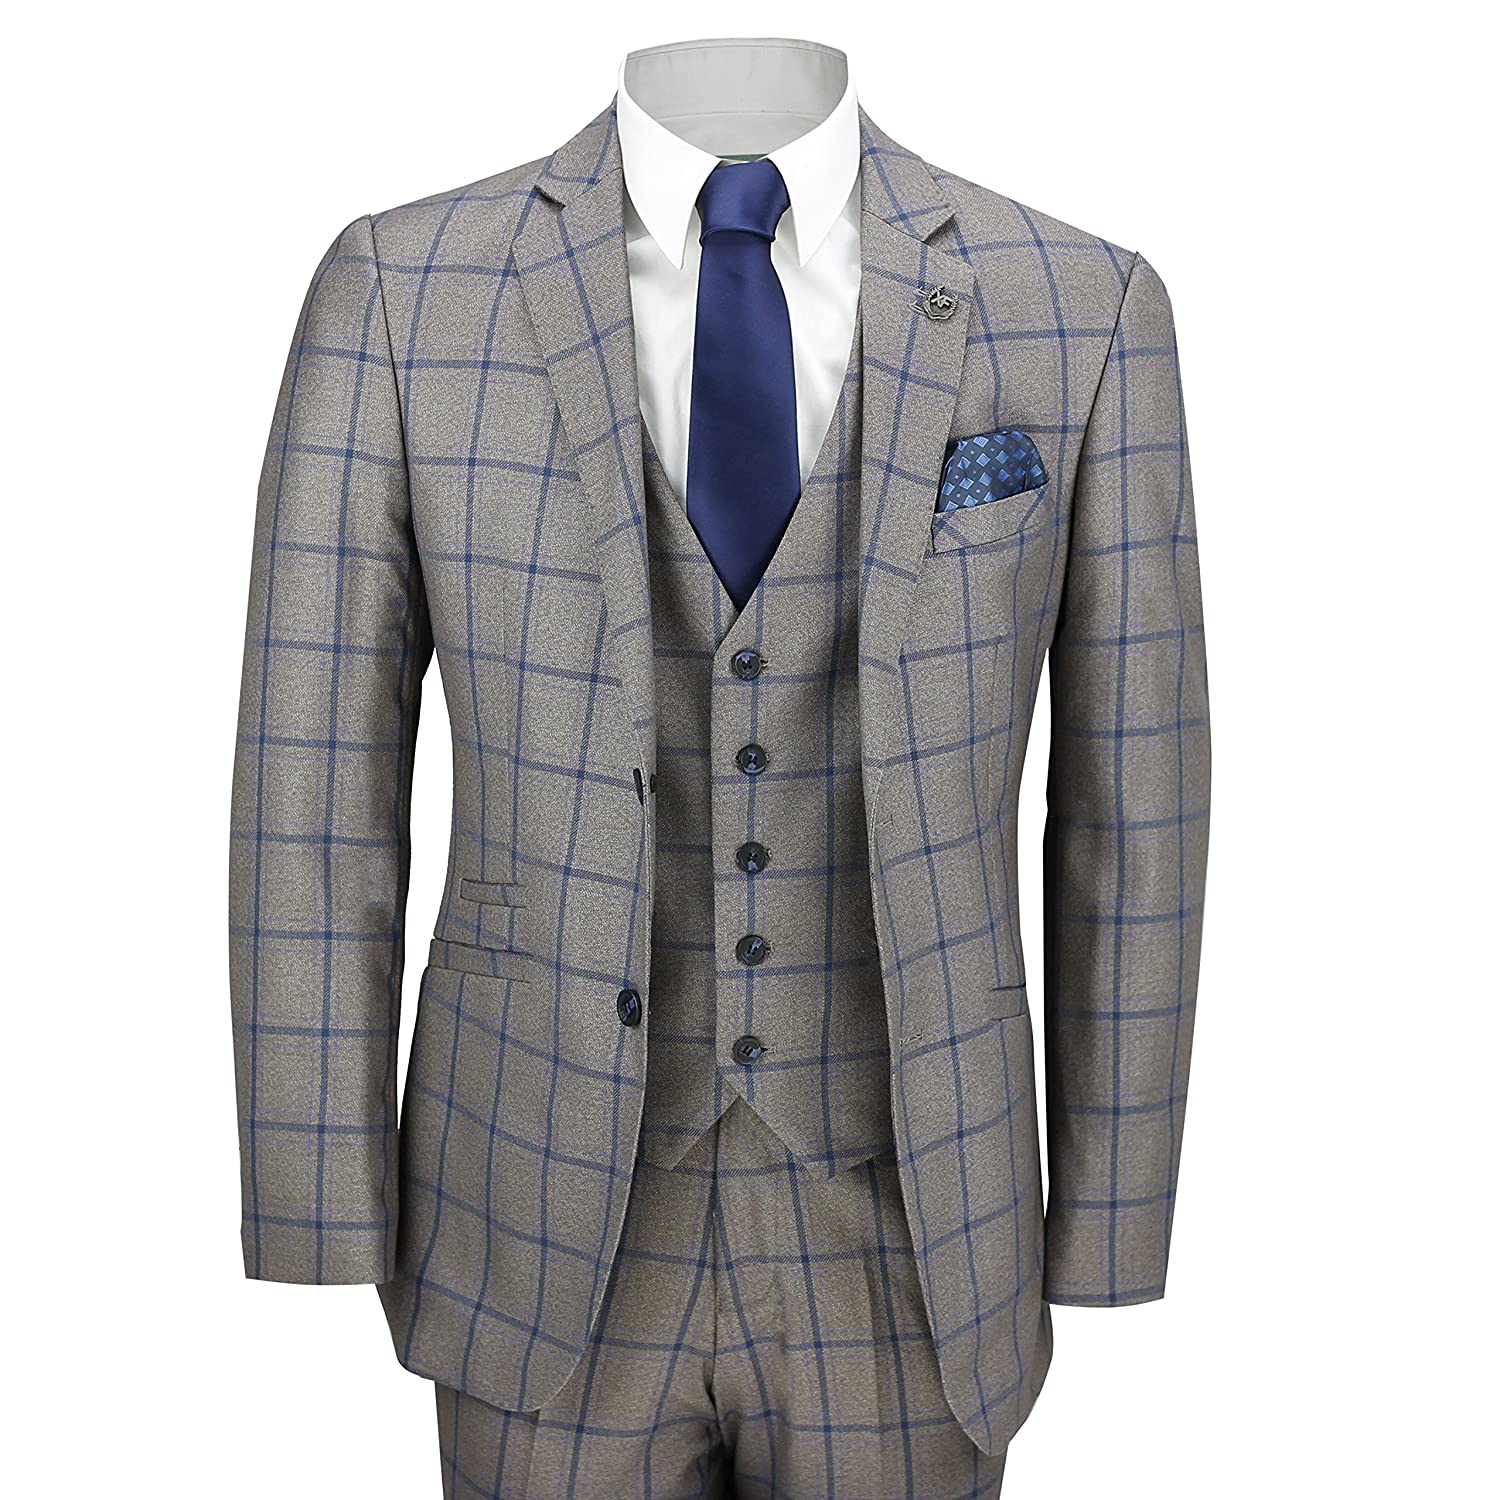 XPOSED Mens 3 Piece Window Pane Blue Check on Brown Vintage Tailored Fit Smart Formal Retro Suit